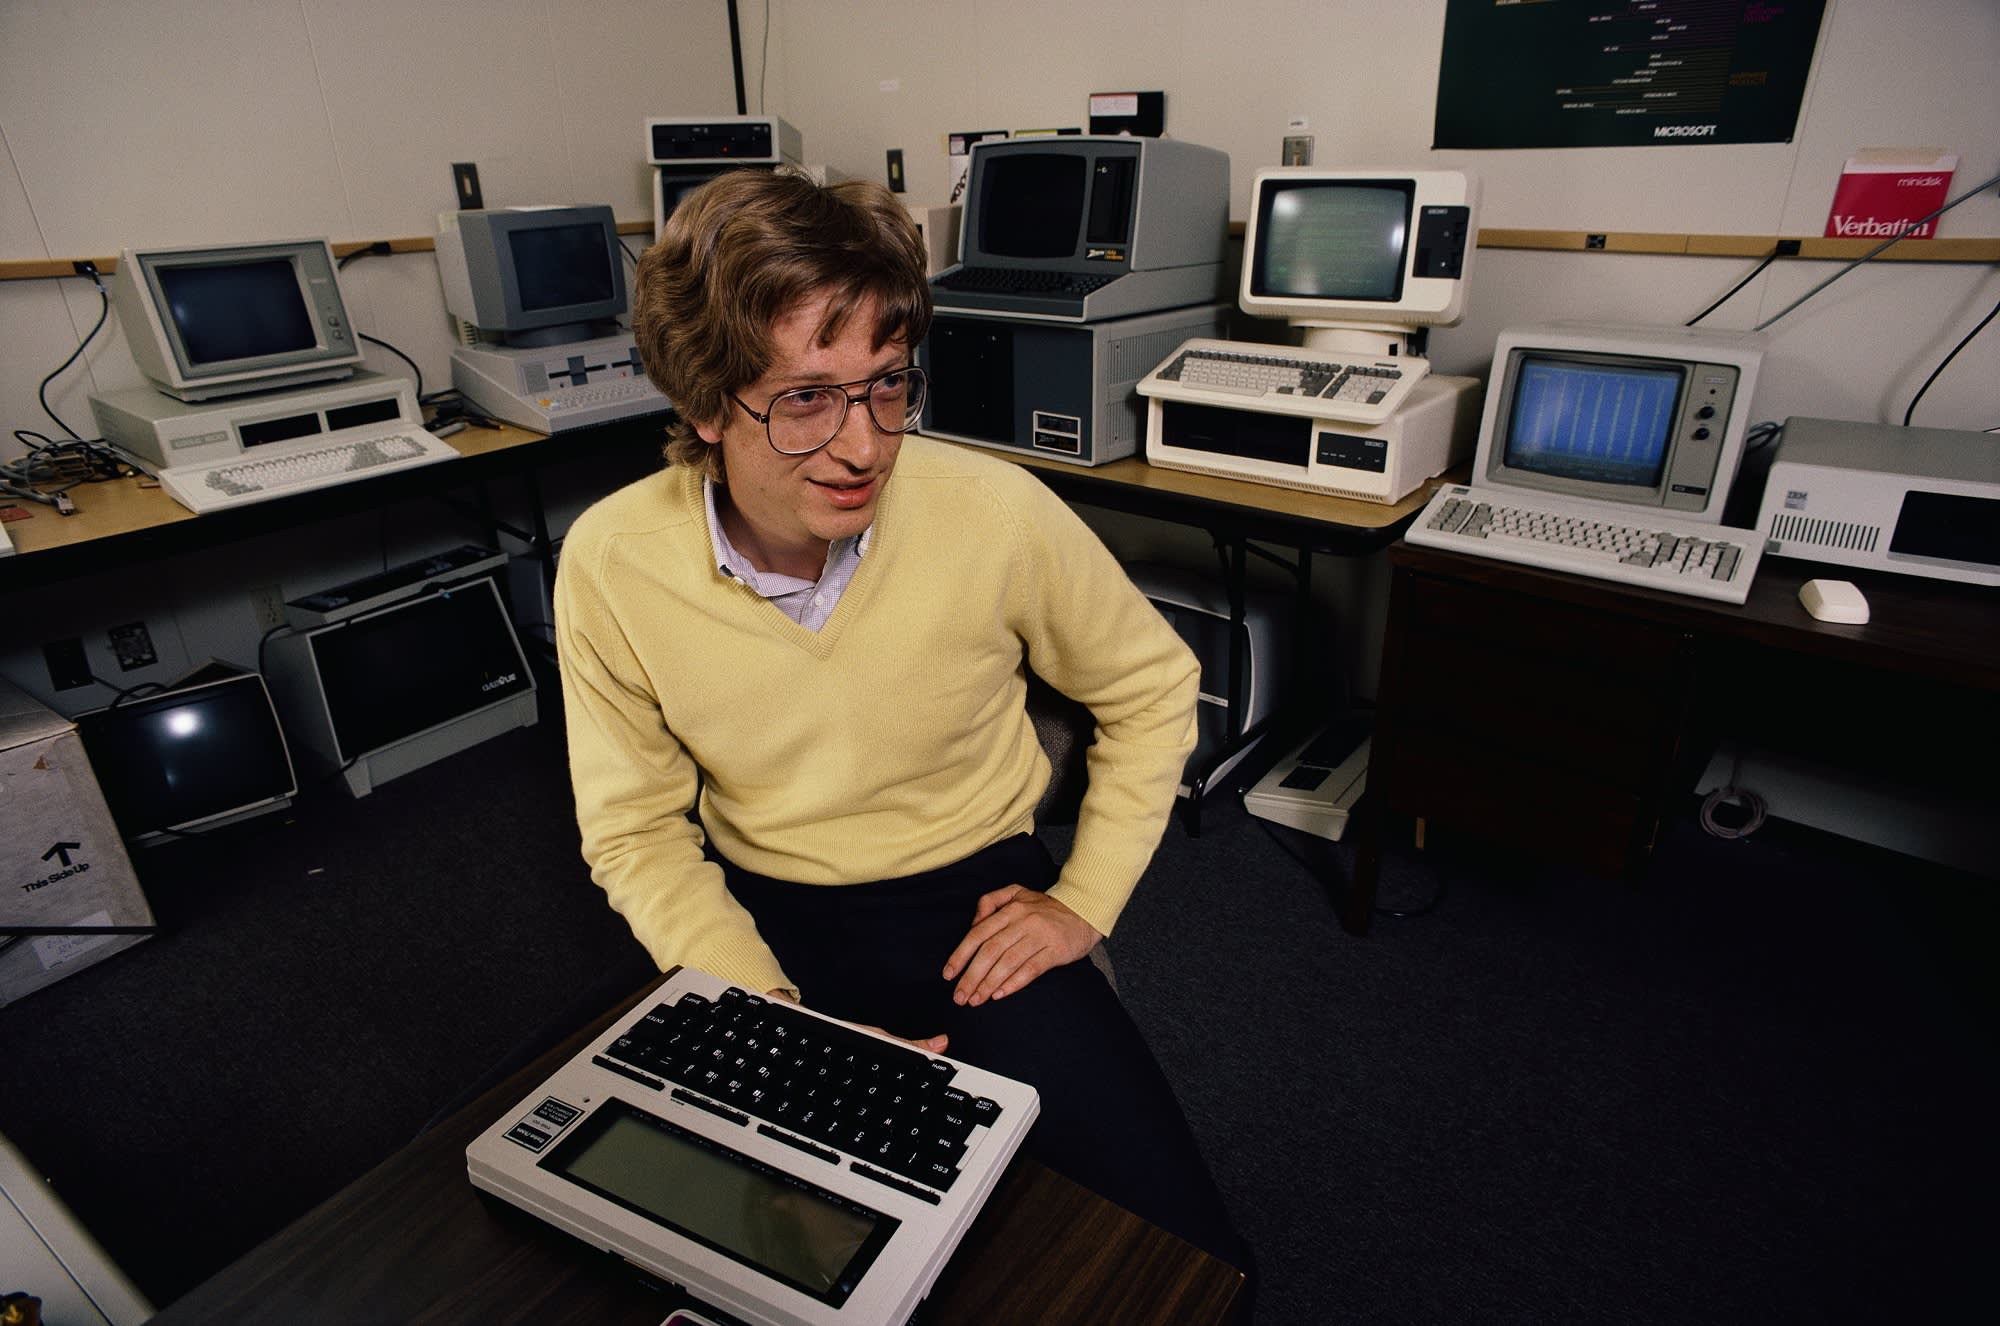 Why Bill Gates gave up music and TV for 5 years in his 20s